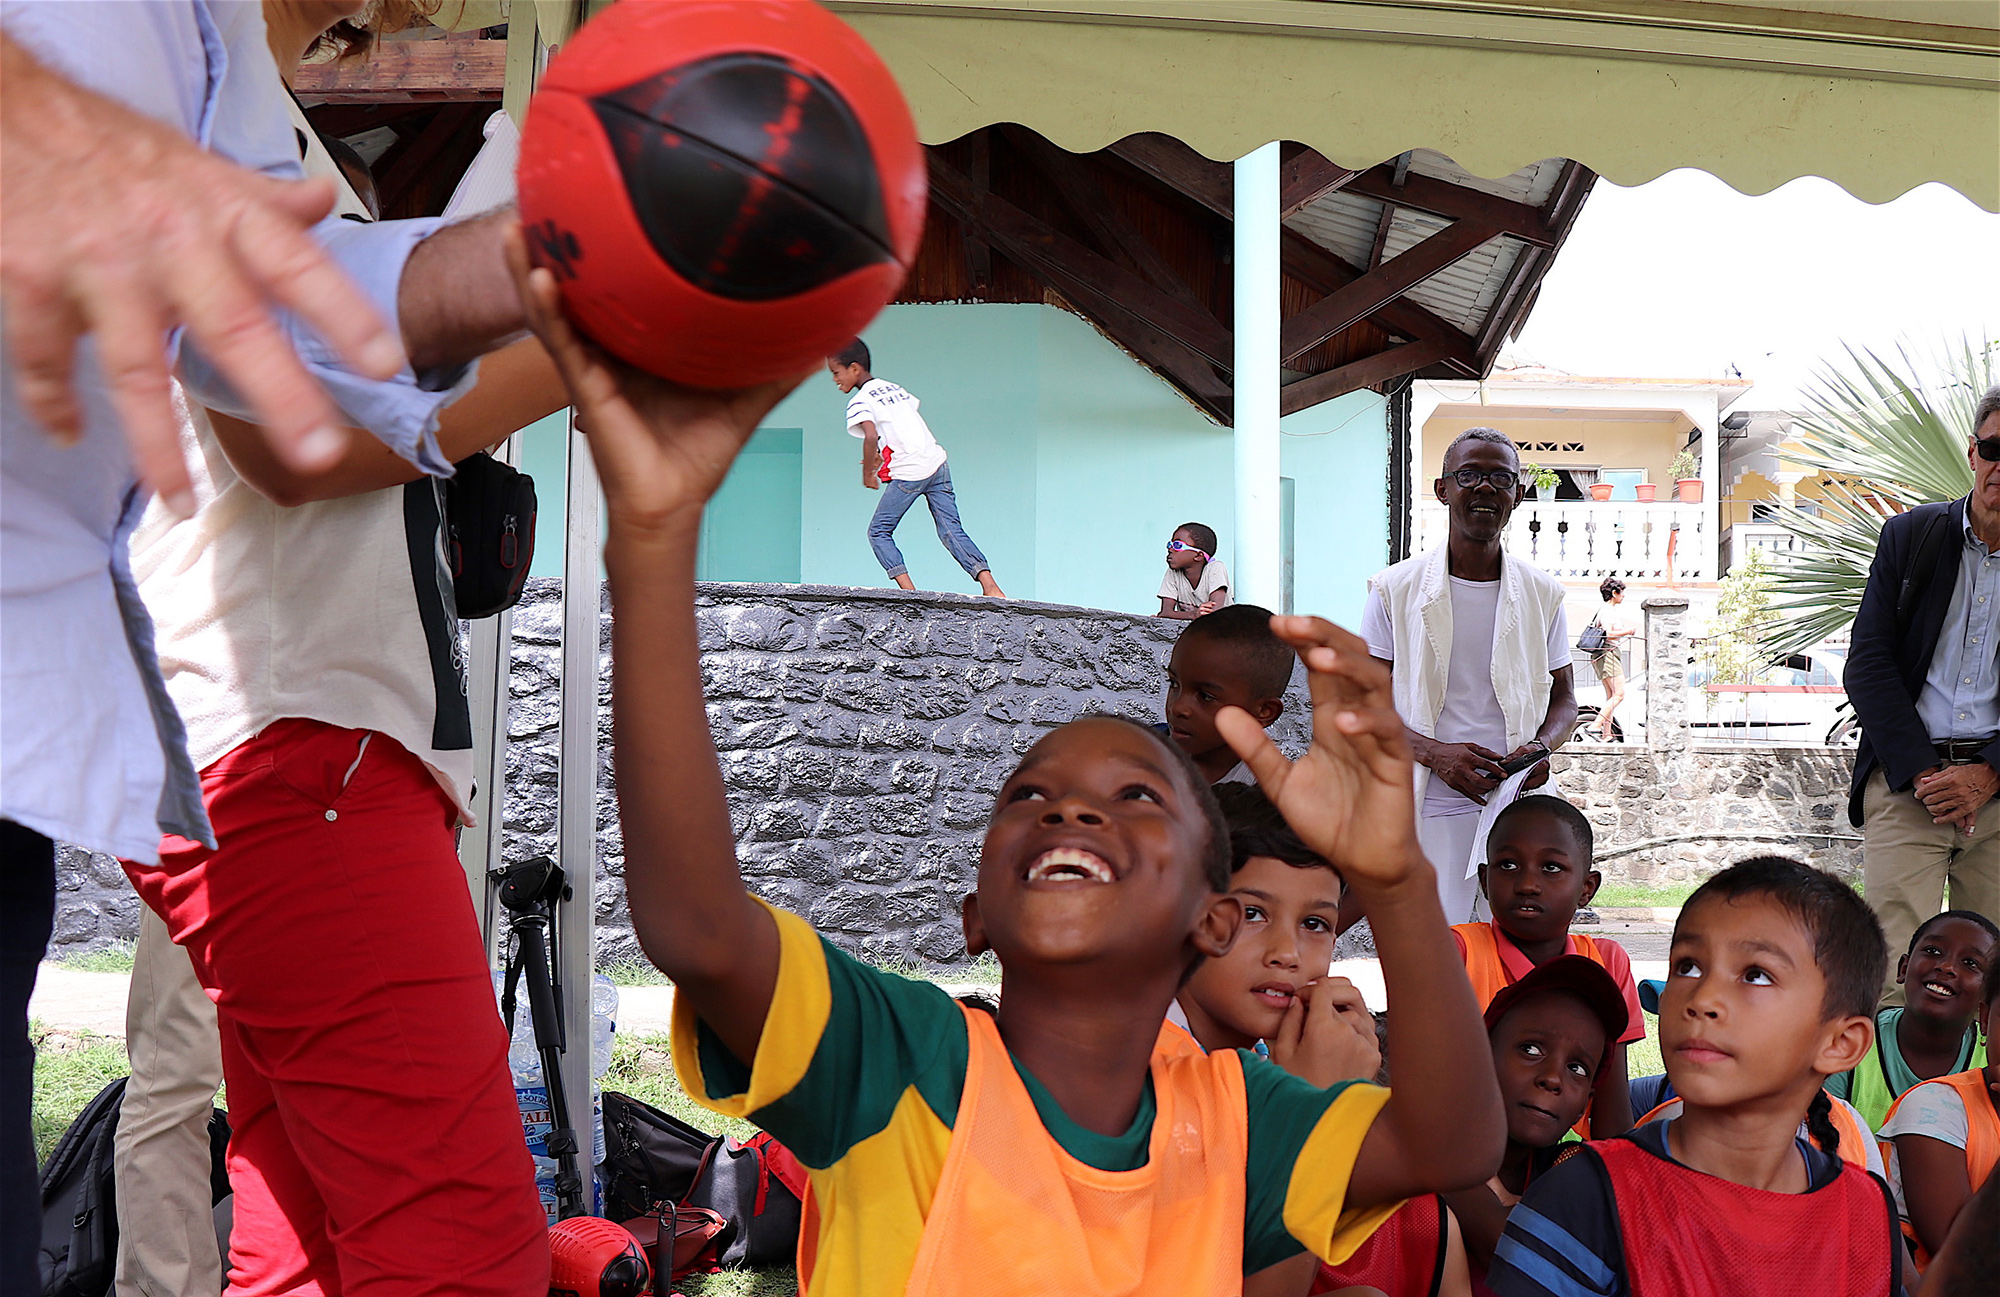 In Mayotte, quality sports facilities are lacking